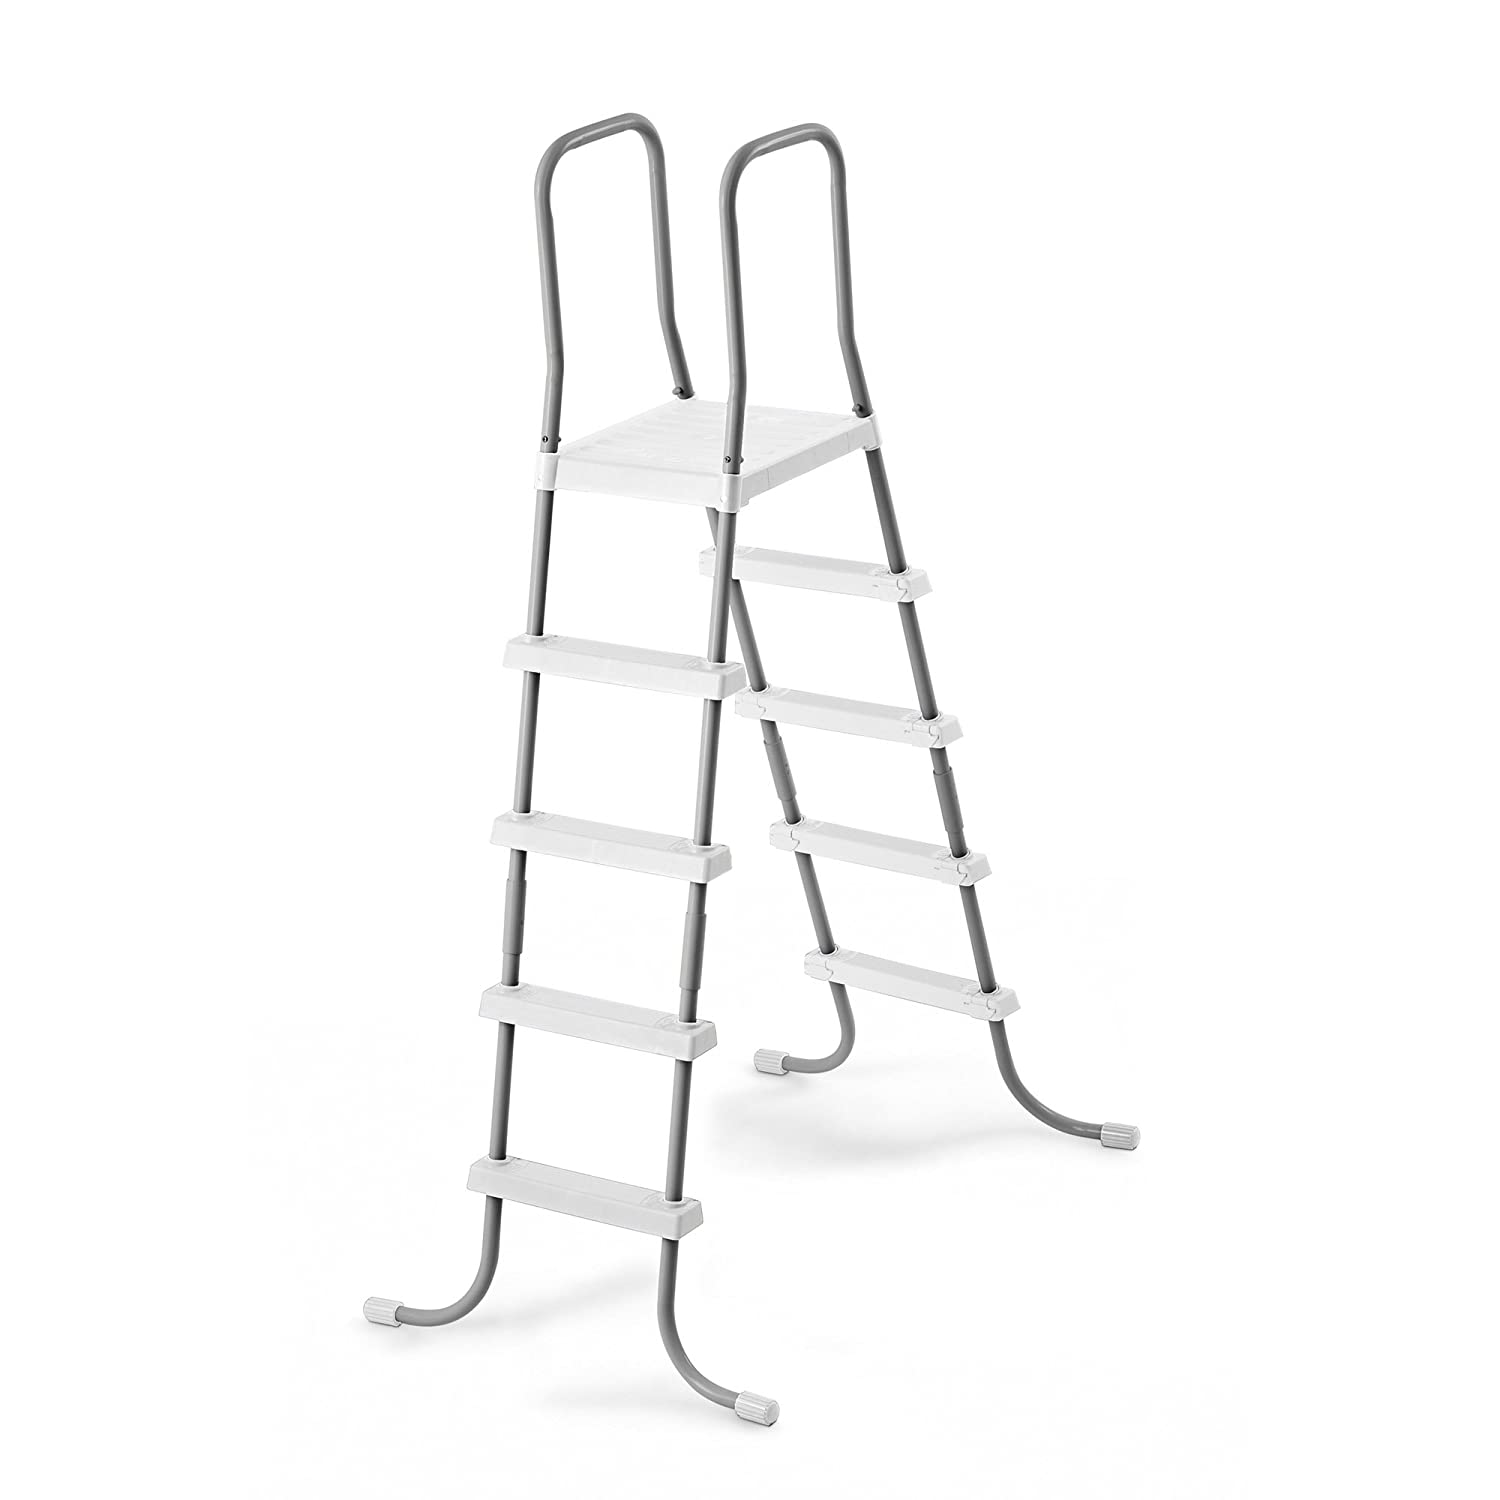 Intex Double-Sided Steel Pool Ladder for 52-Inch Above Ground Pools 28059E